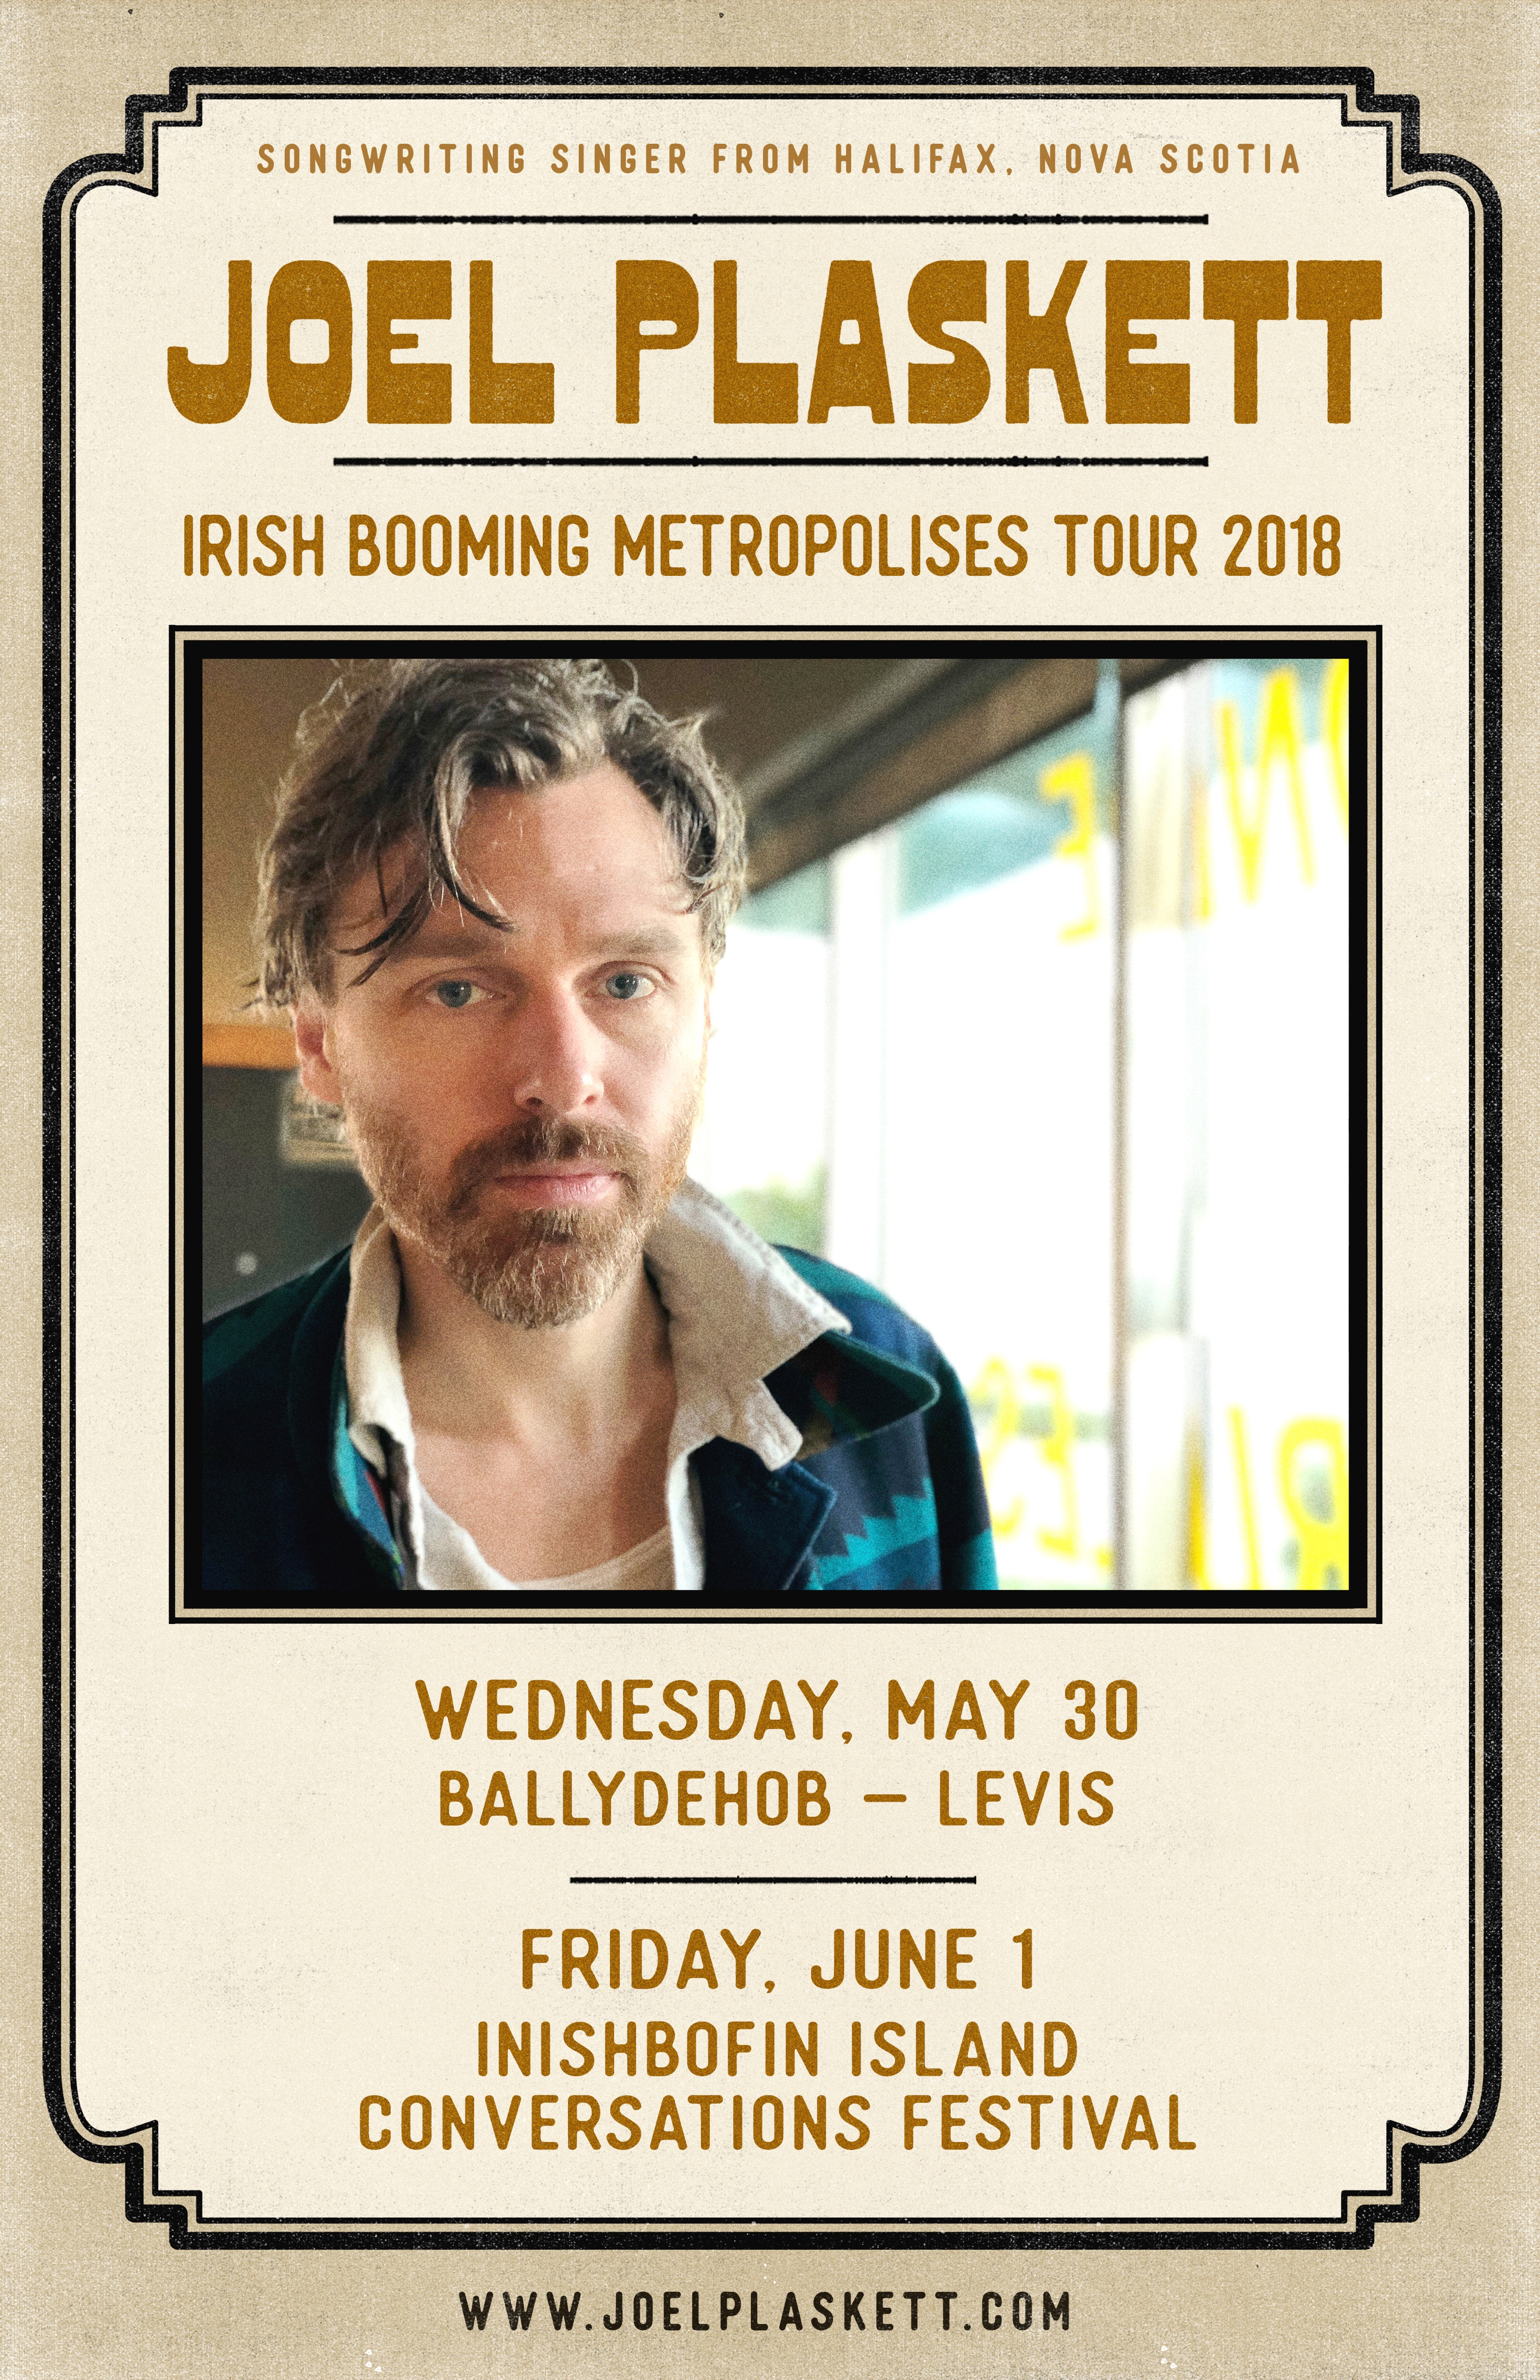 Joel plaskett ireland ballydehob may 30th inishbofin june 1st if you do happen to find yourself in county cork or on inishbofin island pop in for a tullamore dew andor a song solutioingenieria Choice Image